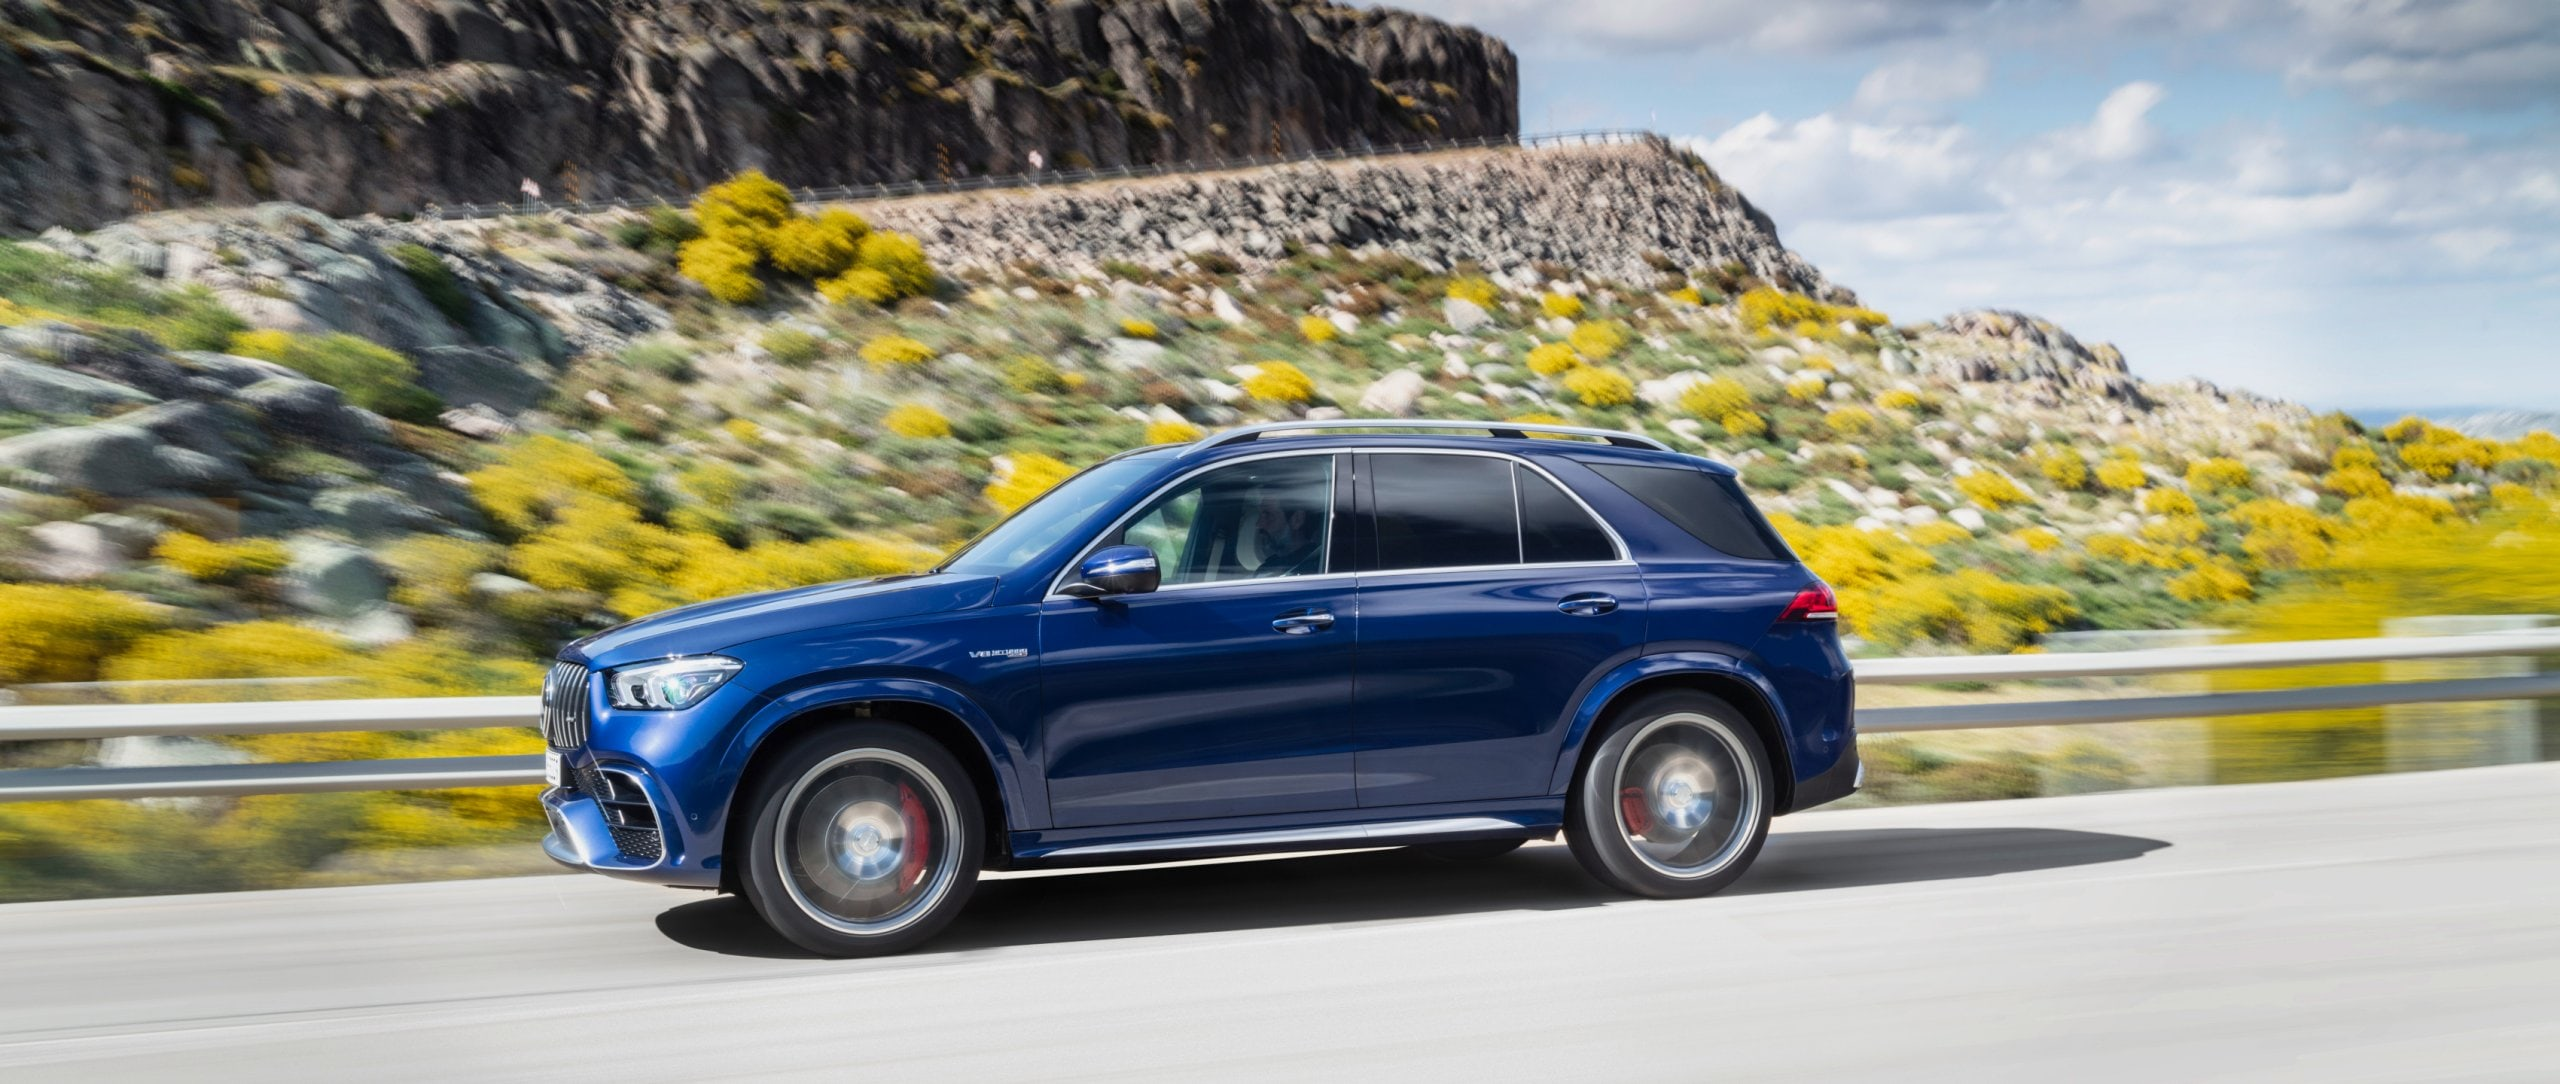 The new 2020 Mercedes-AMG GLE 63 S 4MATIC+ (W 167) in galaxy blue from the side.